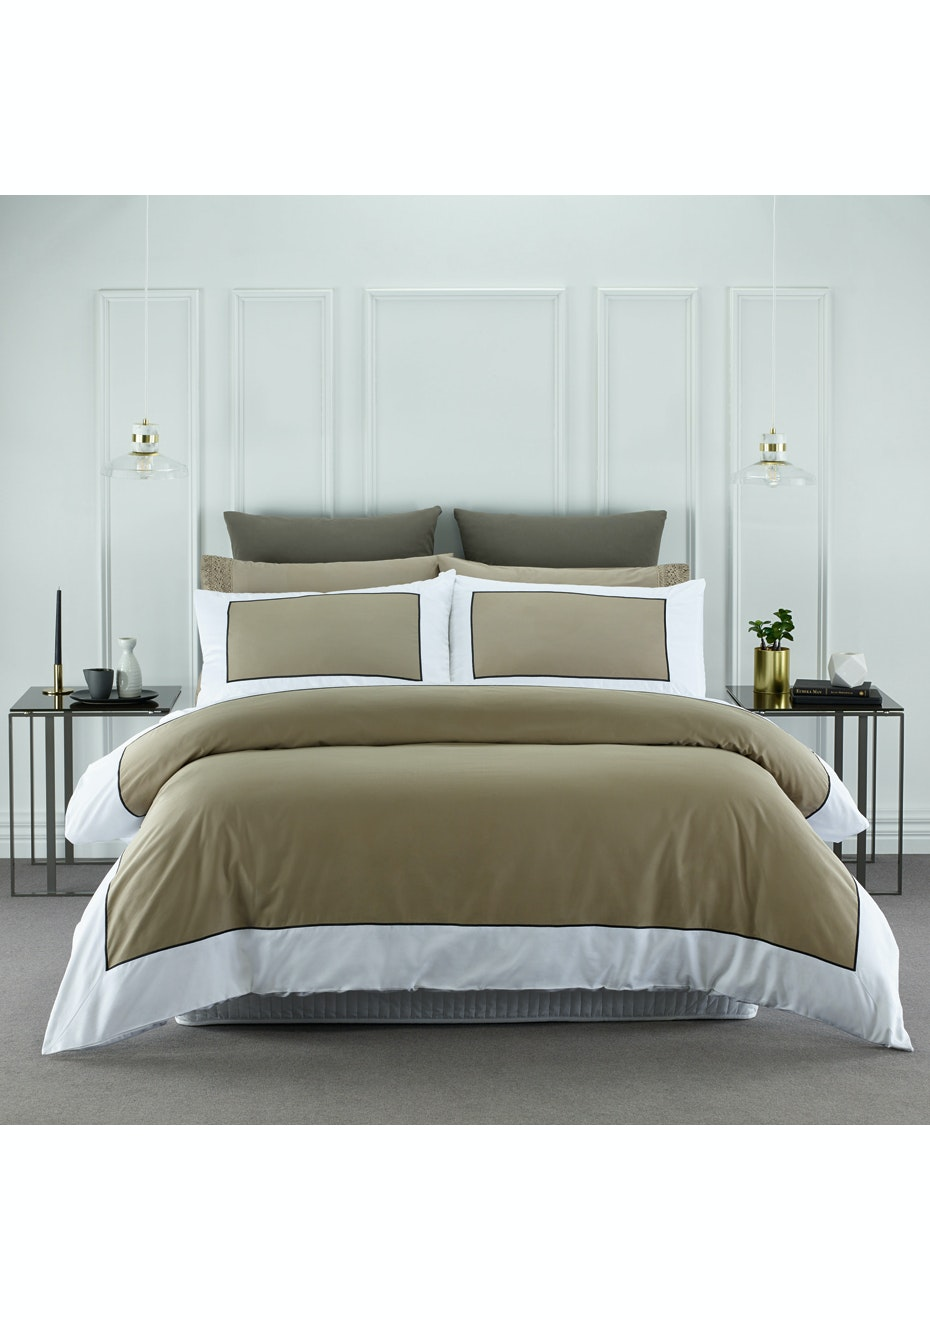 Style & Co 1000 Thread count Egyptian Cotton Hotel Collection Ascot Quilt Cover sets Super King Linen